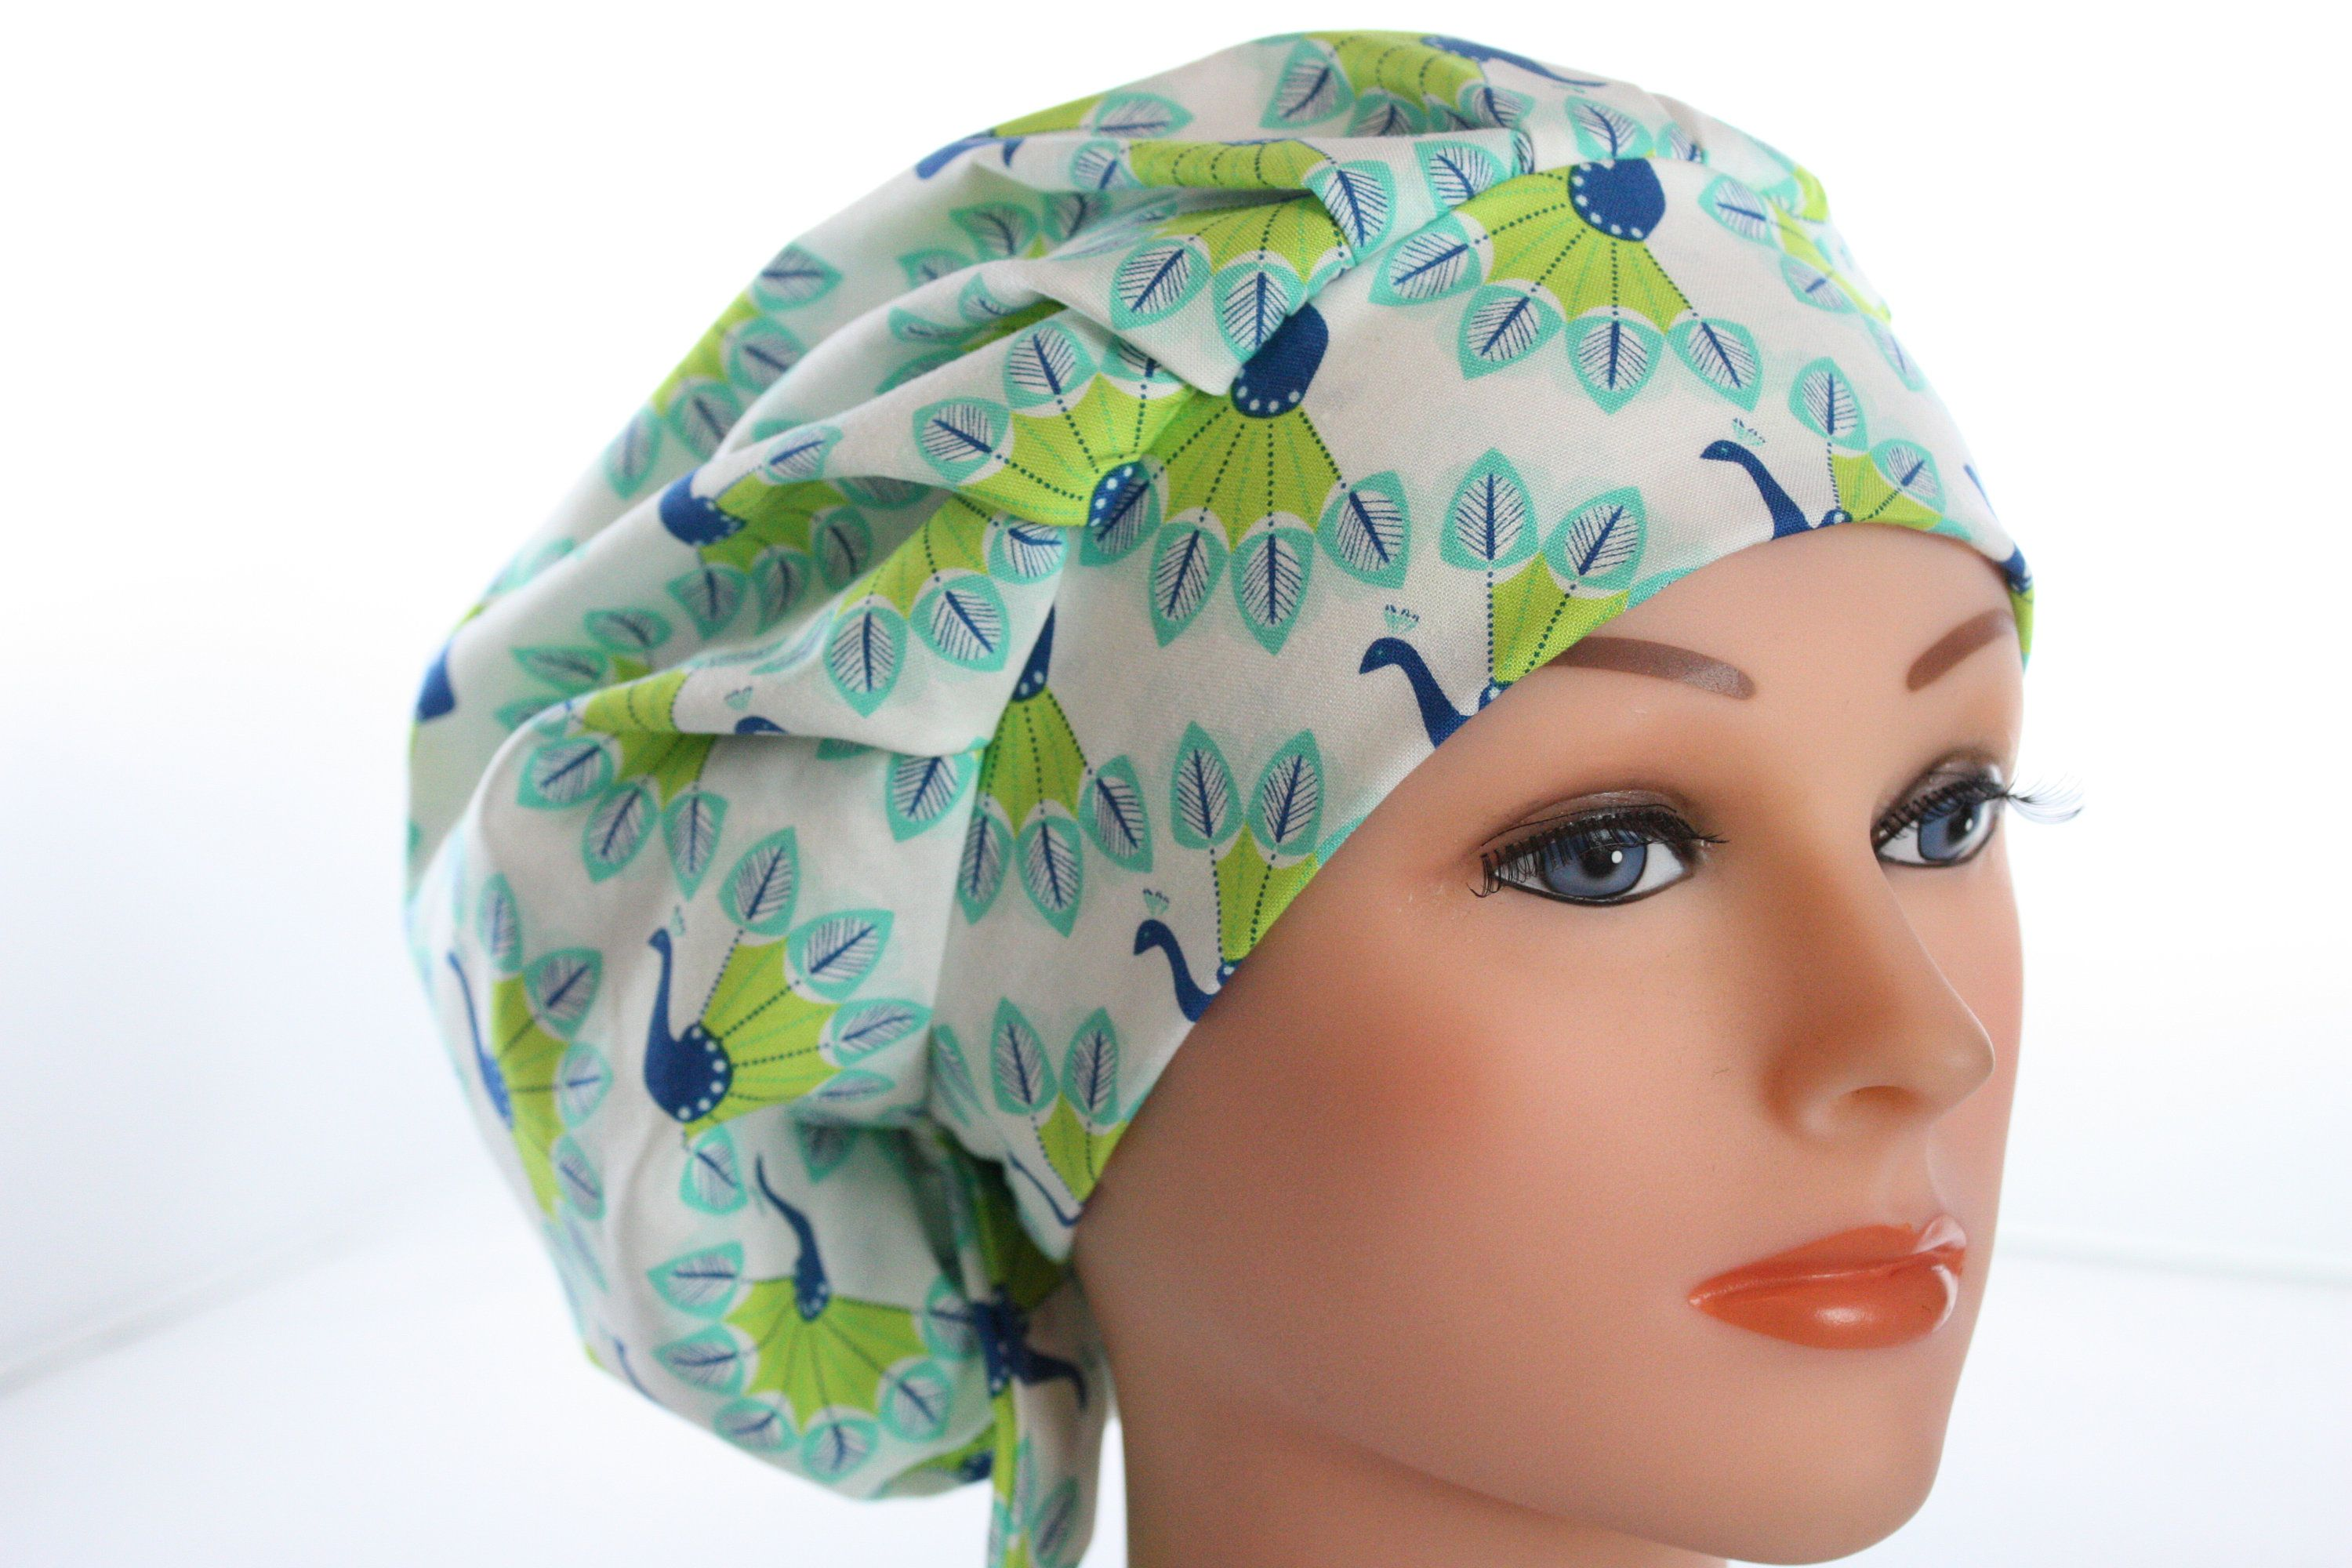 95110f981e6 ... new style scrub cap surgical bouffant hat chef dentist tie back bluesy  peacocks free u.s. shipping